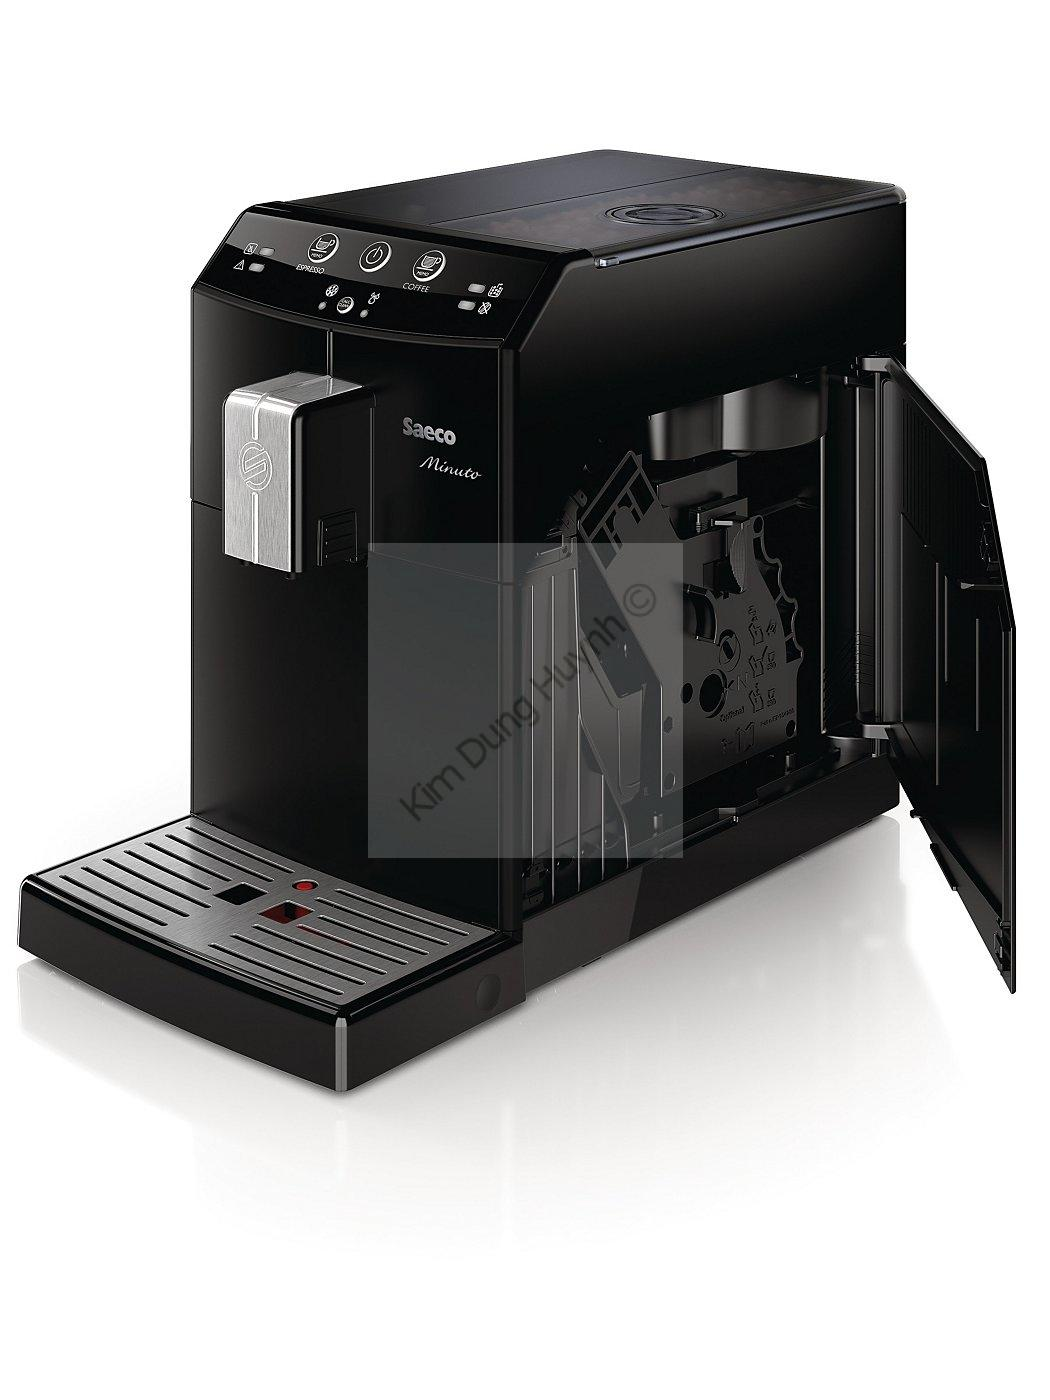 philips saeco hd8760 01 minuto pure kaffeevollautomat. Black Bedroom Furniture Sets. Home Design Ideas